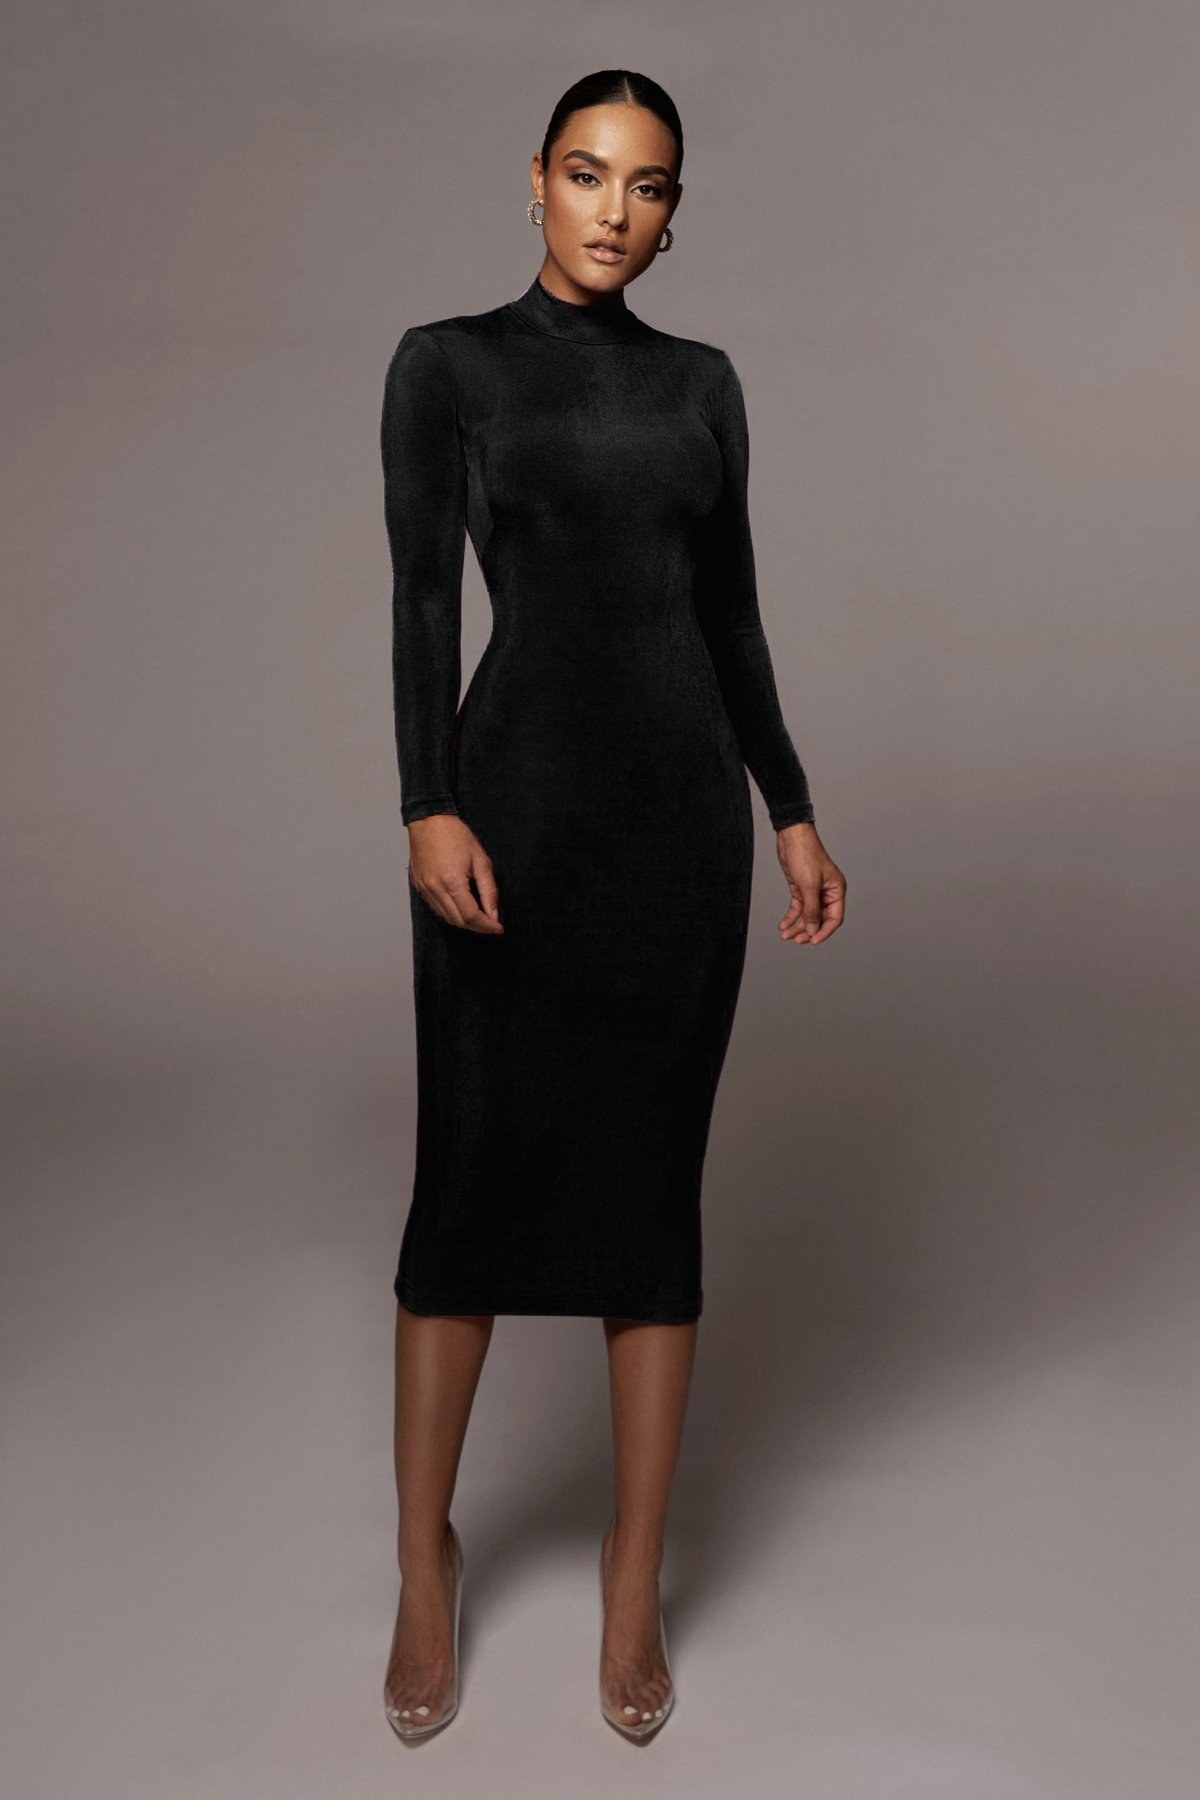 model wearing bodycon black dress with a midi length